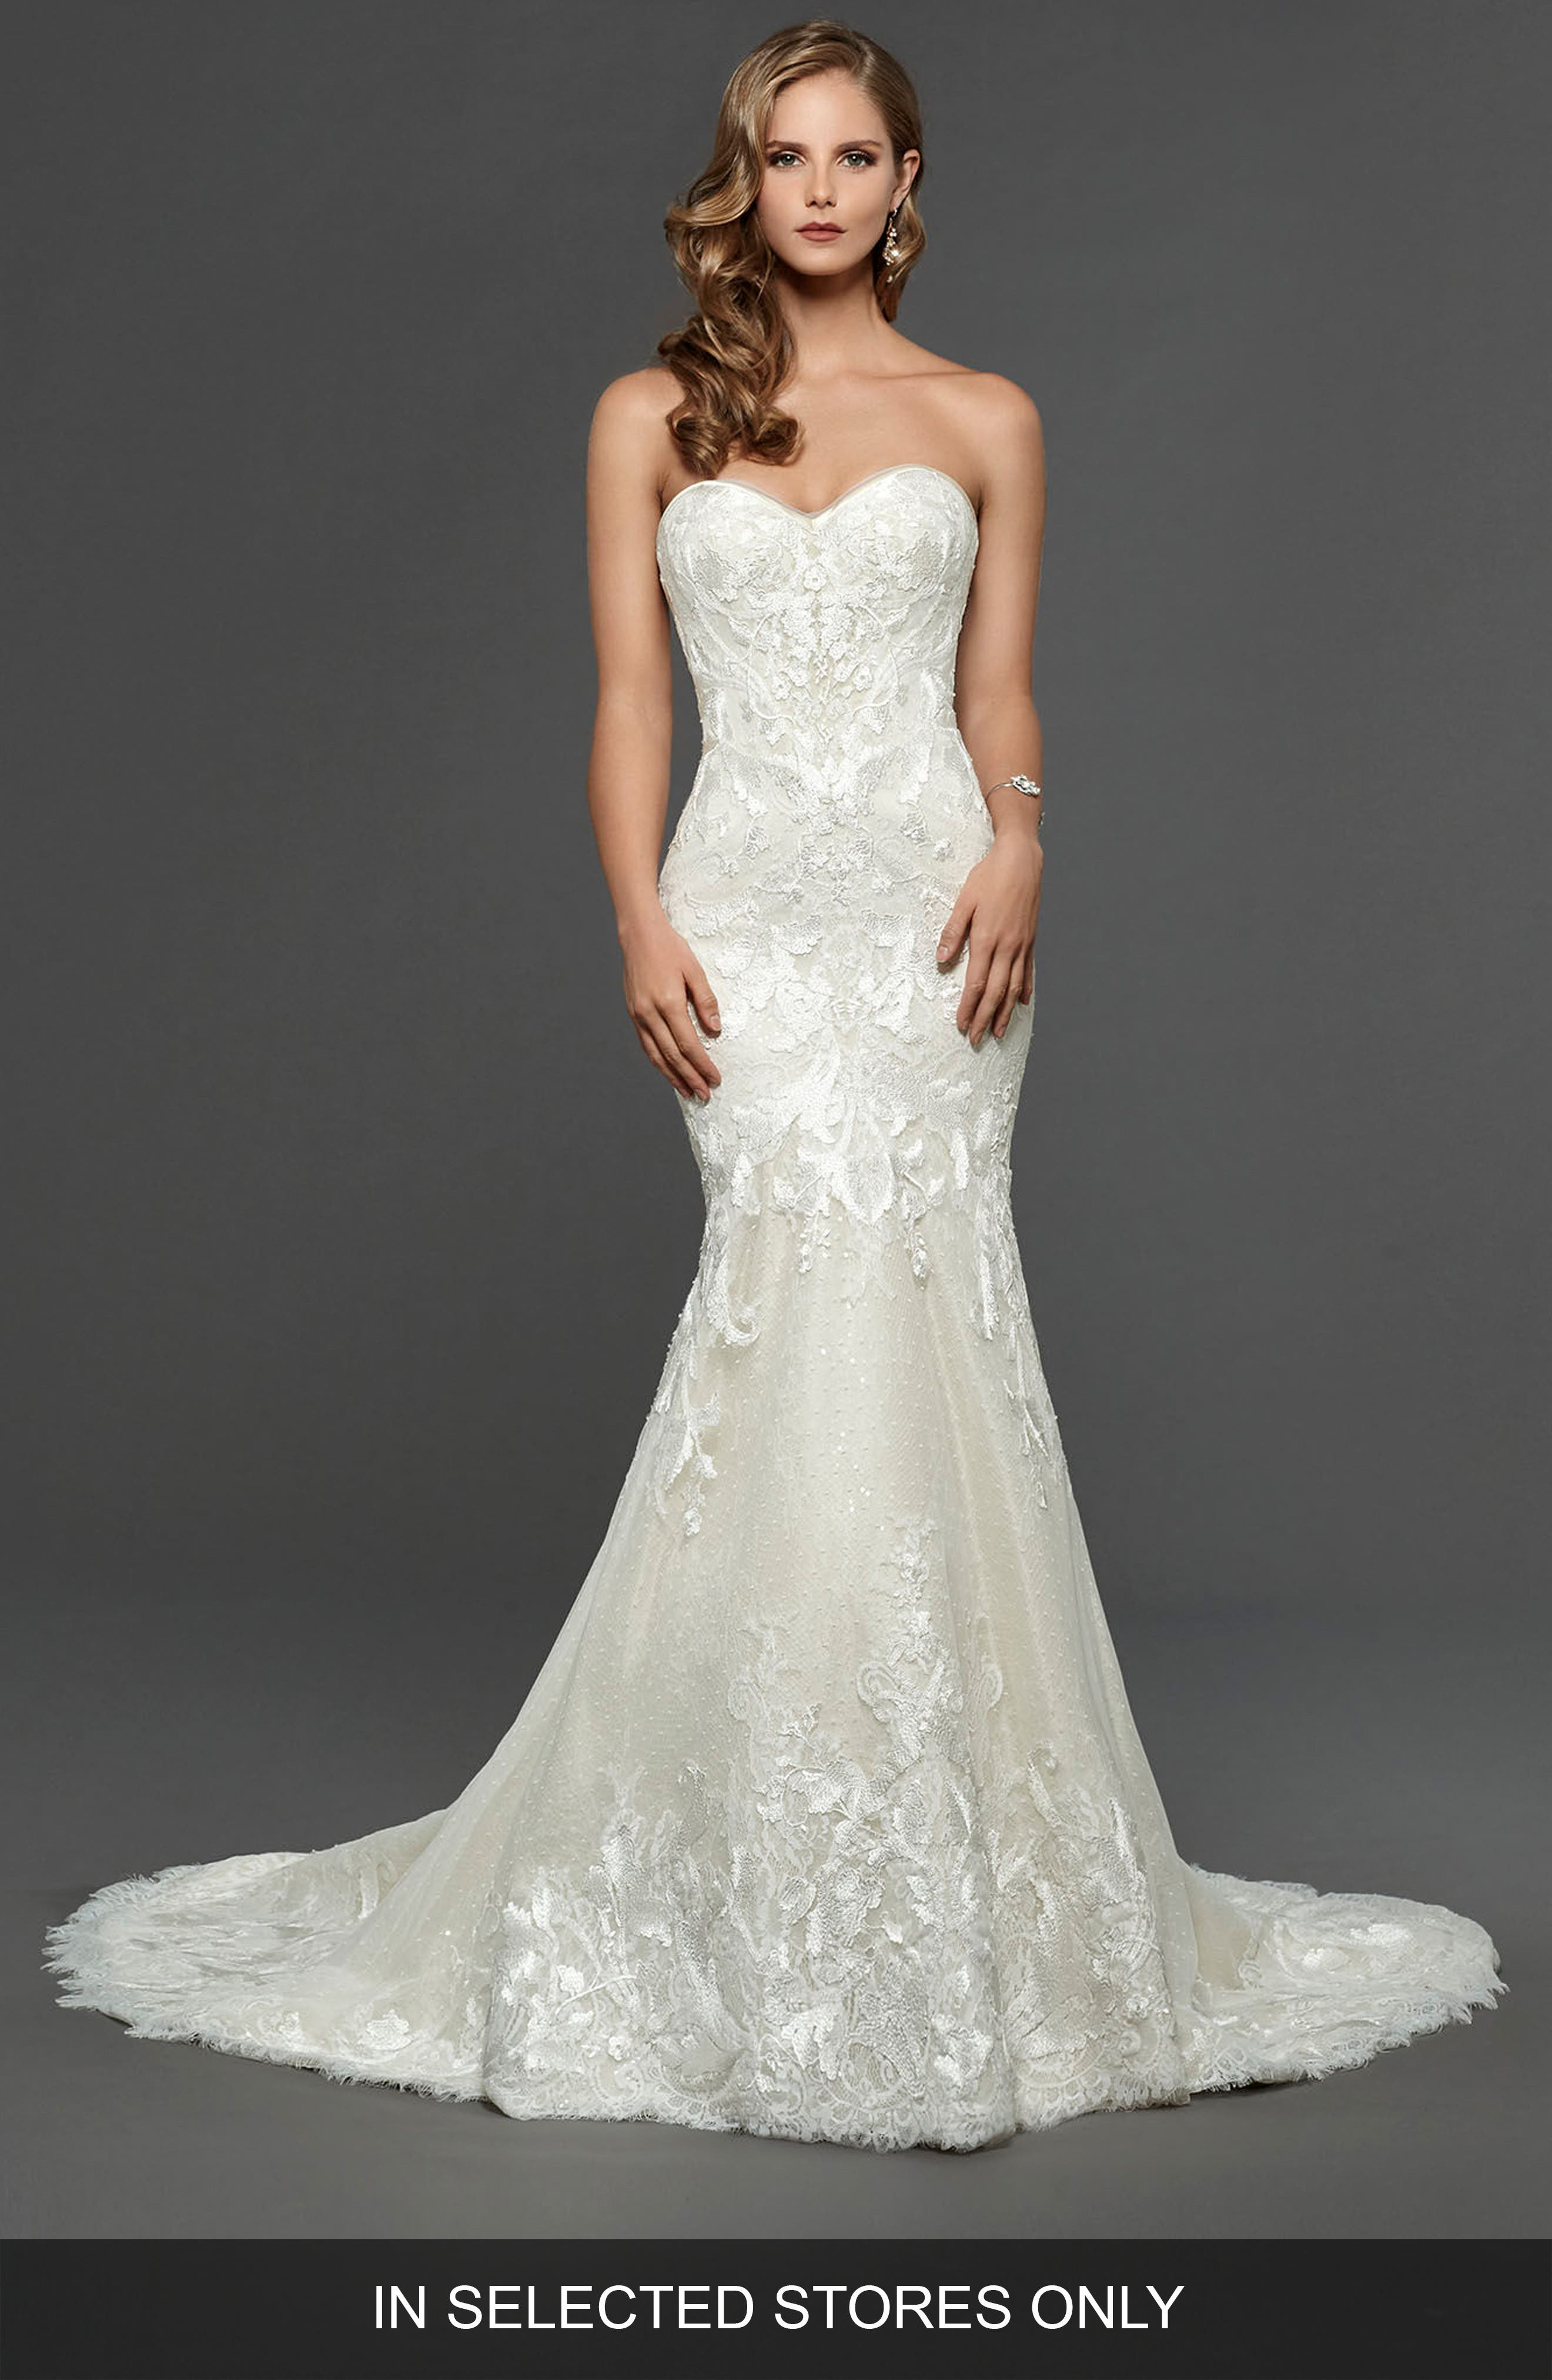 Claire Strapless Sweetheart Trumpet Gown,                             Main thumbnail 1, color,                             900